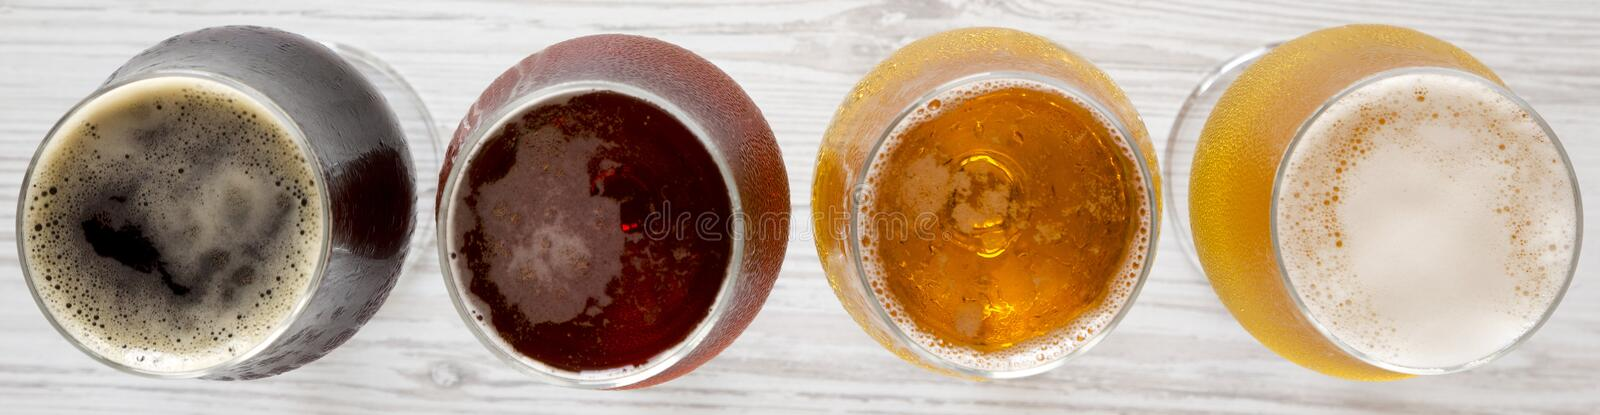 Assorted beers on a white wooden surface, top view. Overhead, from above.  royalty free stock image